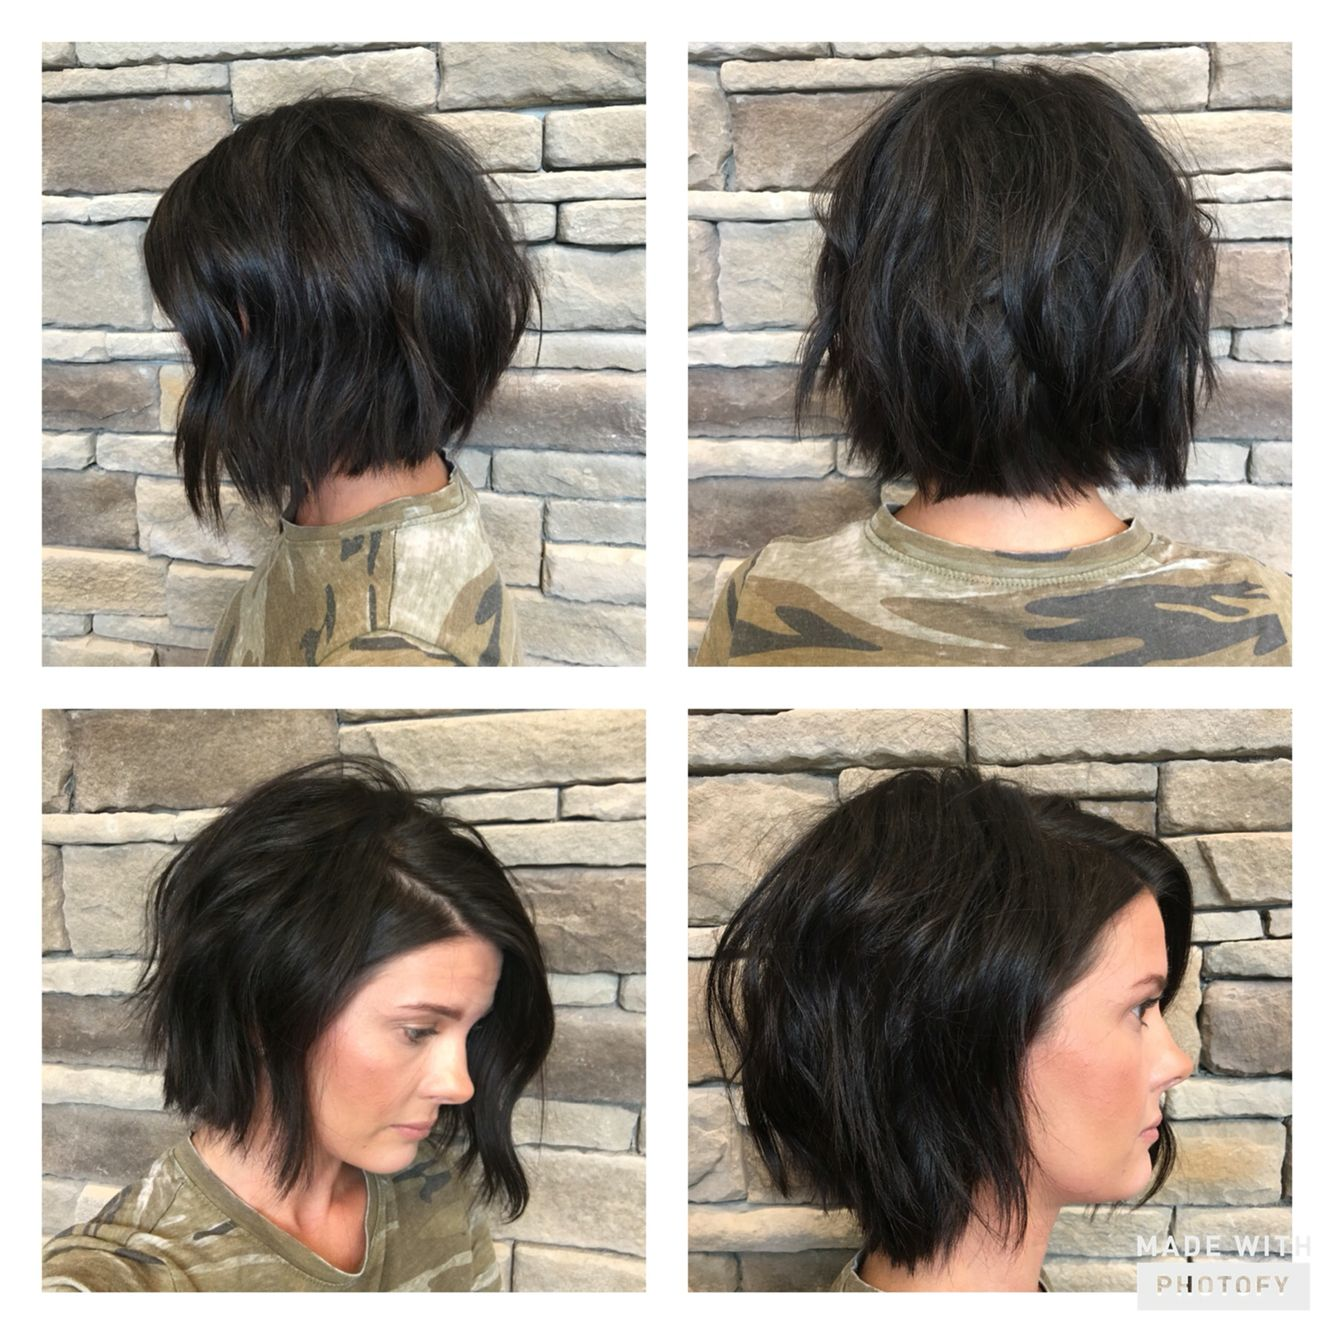 Texturized Modern Bob Studio603 Short Styles Hair Hair Cuts